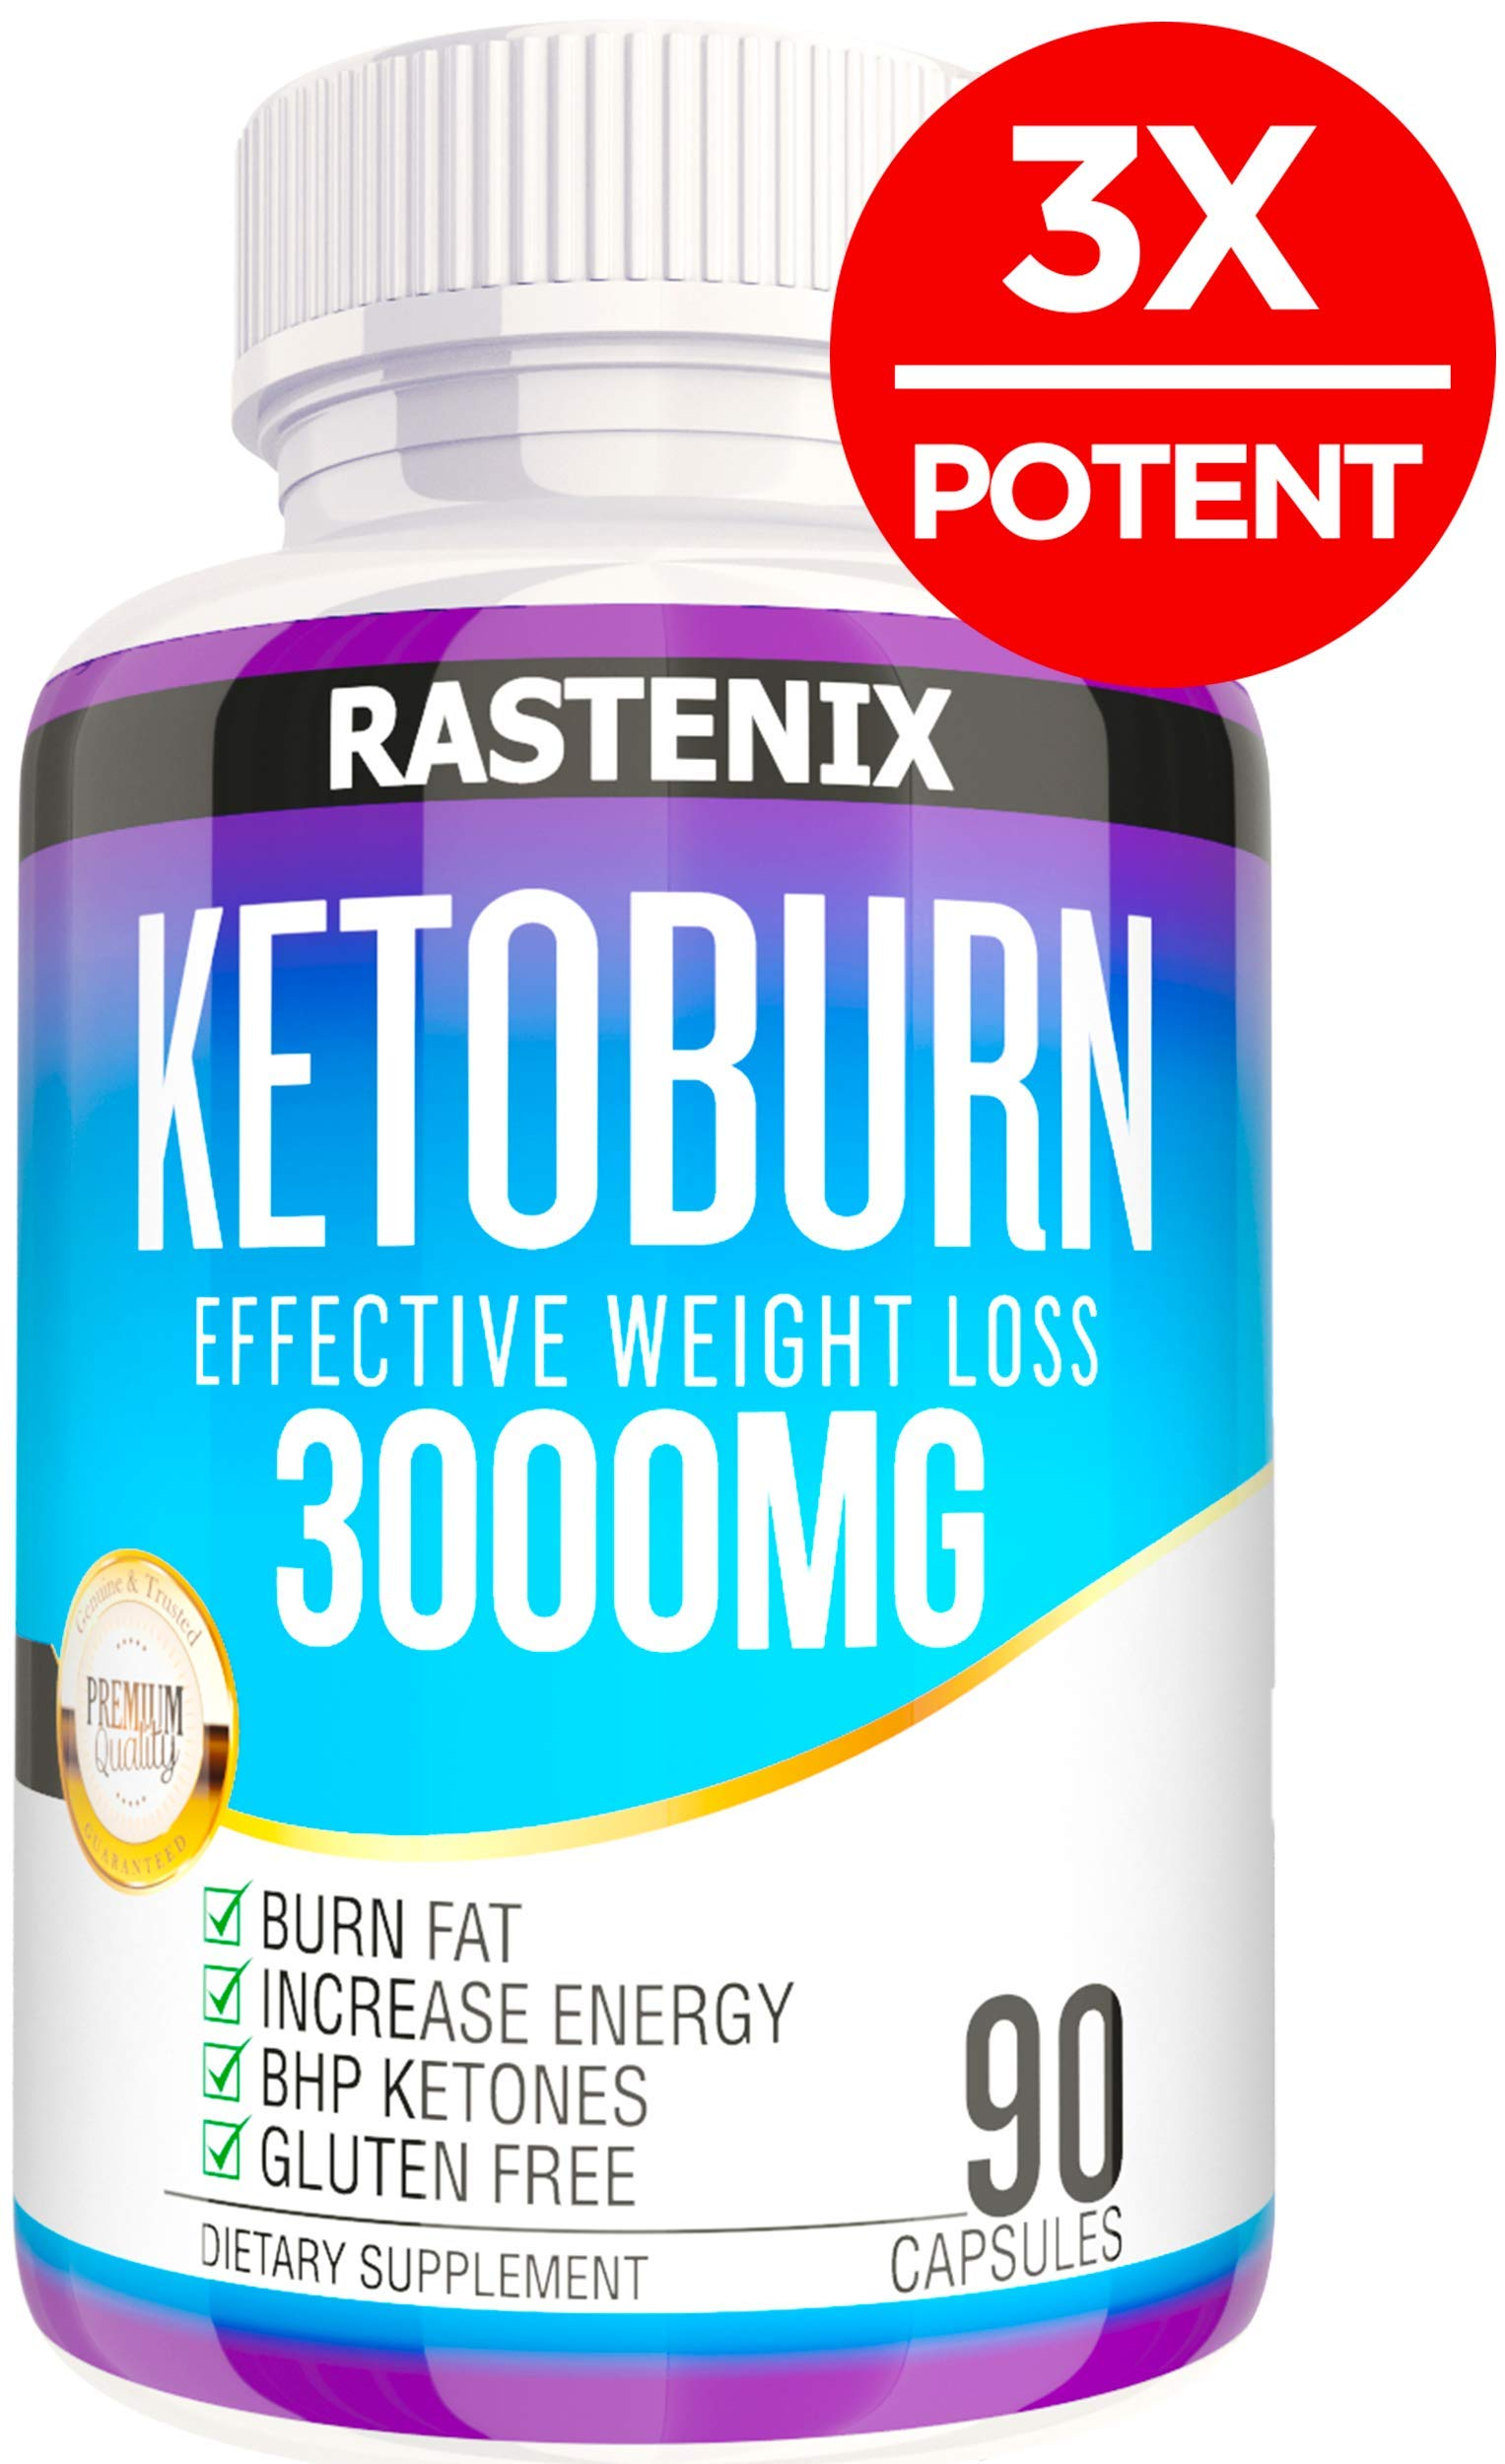 Best Keto Pills - 3X Potent (3000mg | 90 Capsules) - Weight Loss Keto Burn Diet Pills - Boost Energy and Metabolism - Exogenous Keto BHB Supplement for Women and Men - 90 Capsules by Rastenix